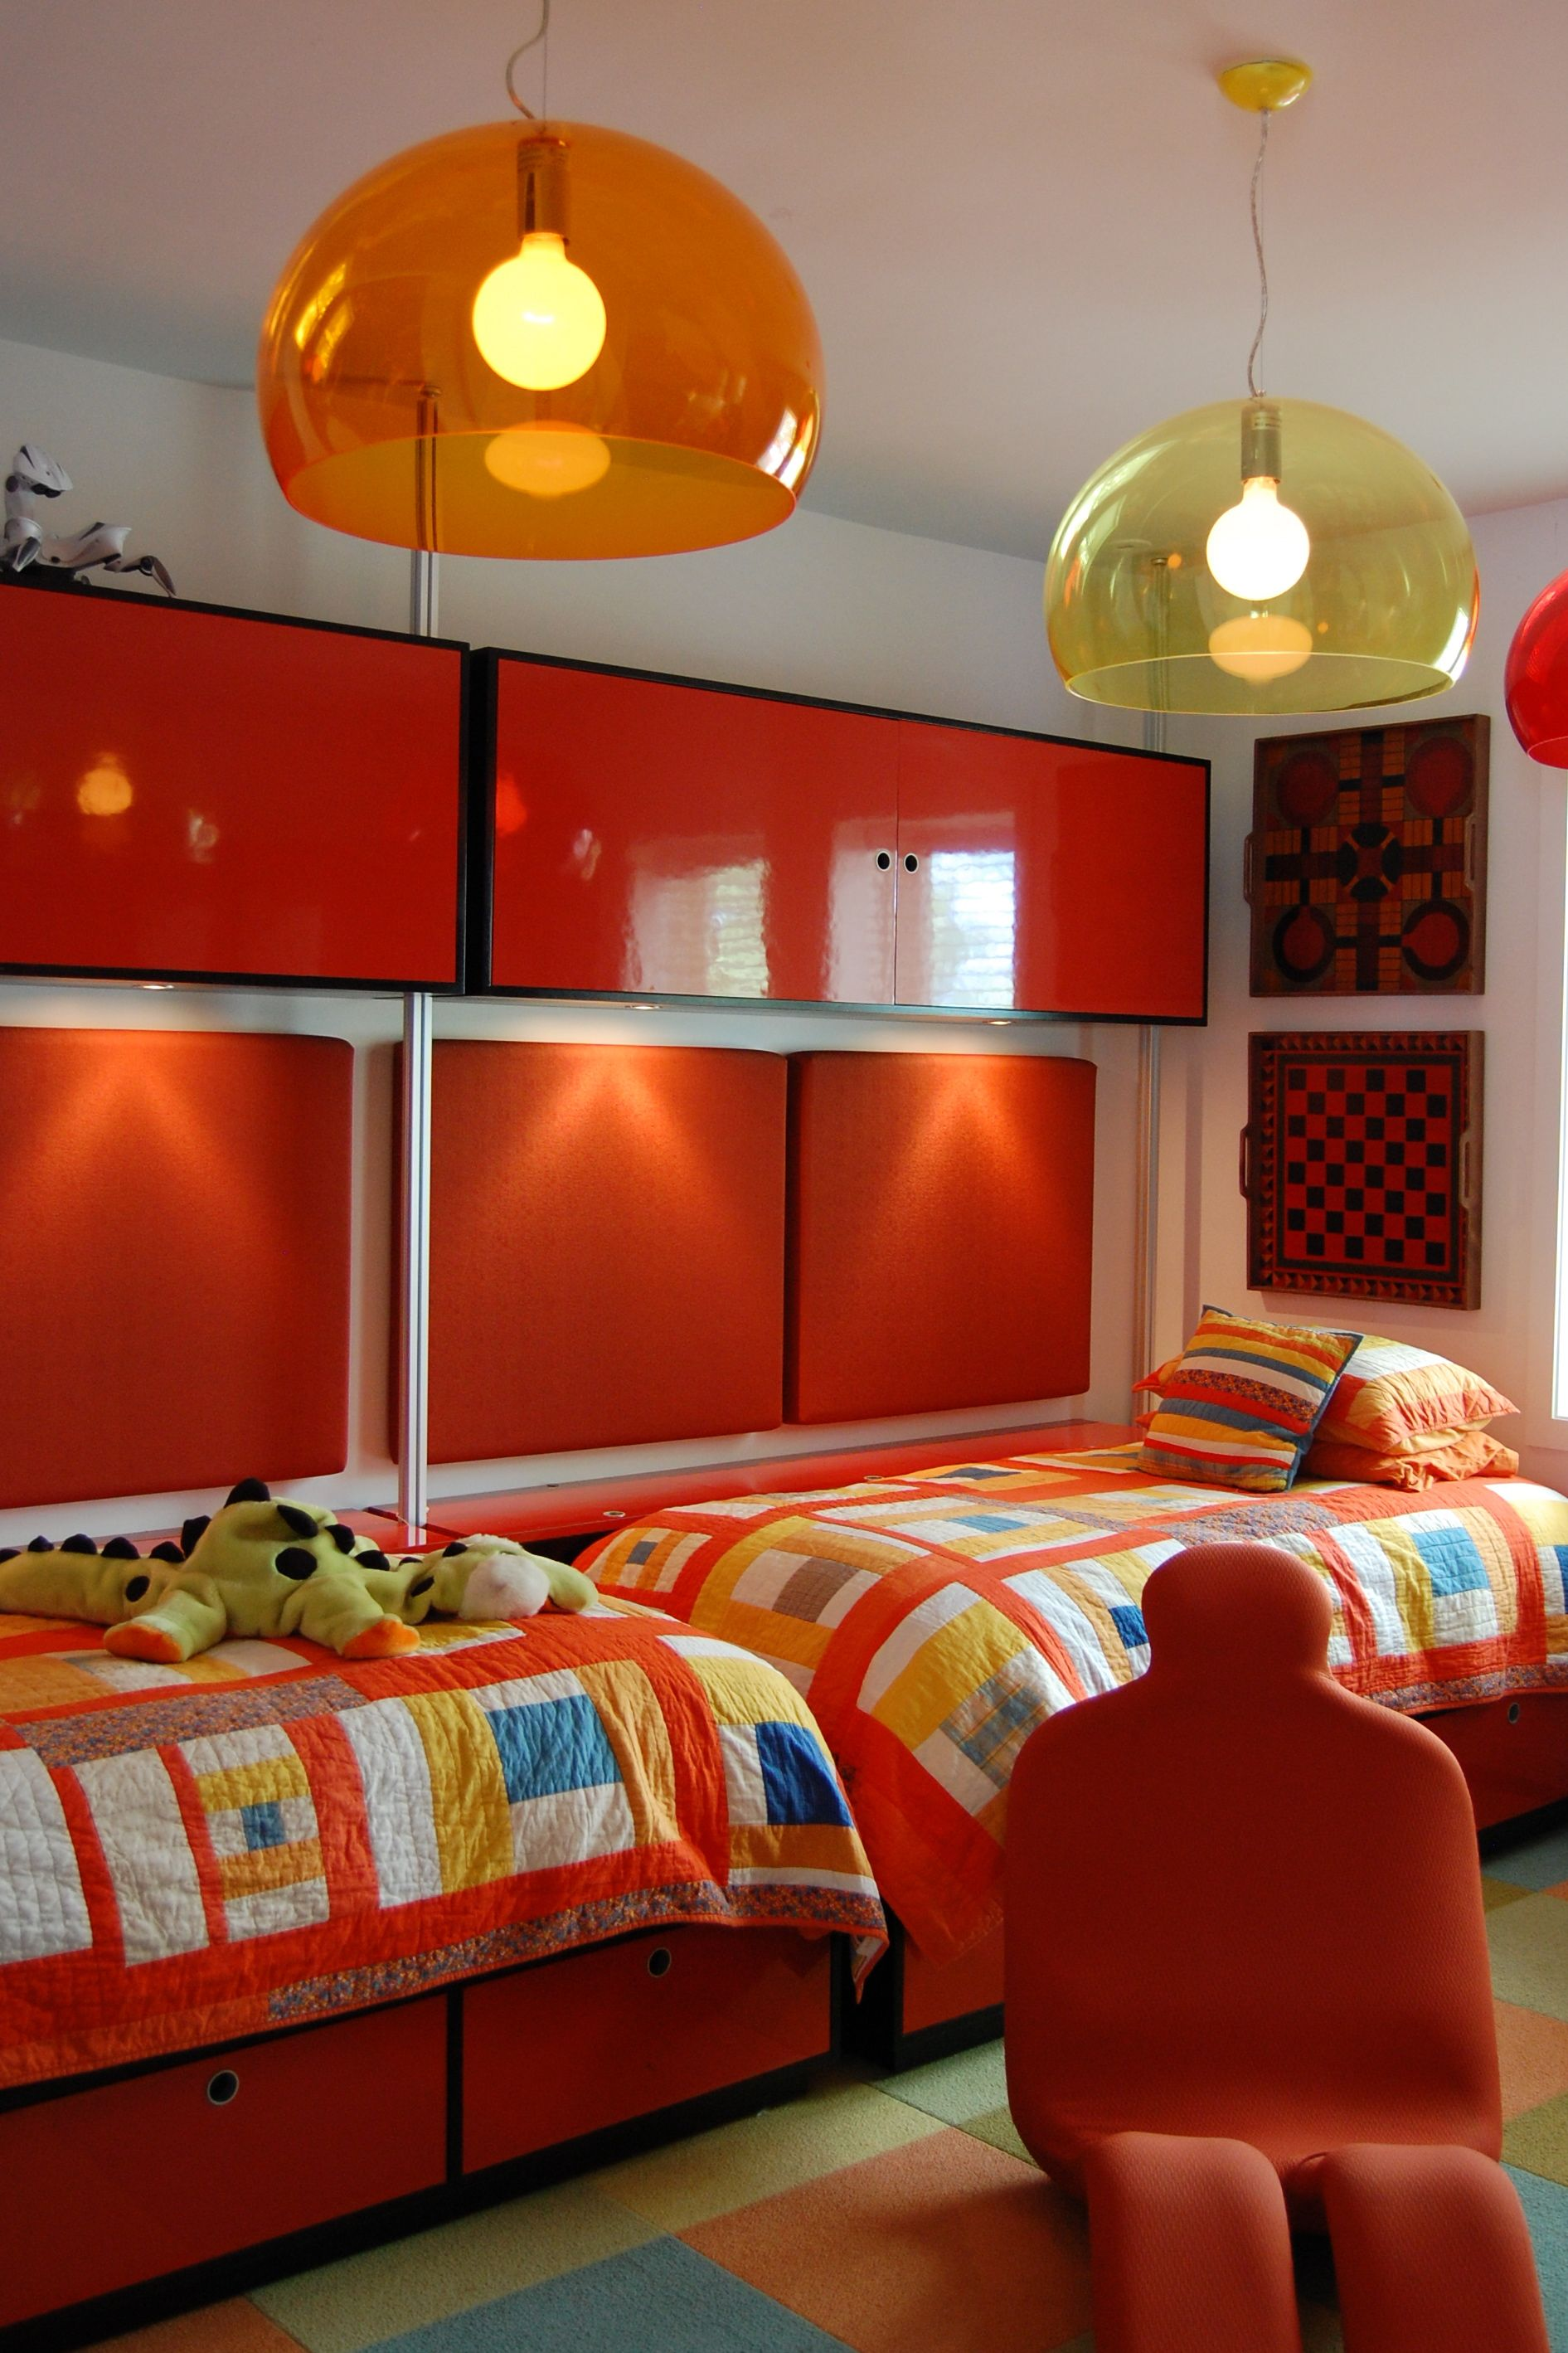 Charming 9 And 12 Year Old Boys Bedrooms With Colorful Striped Twin Bed And Storage  Also Pendant Lamps   Gallery Pictures Of 12 Year Old Bedroom Ideas